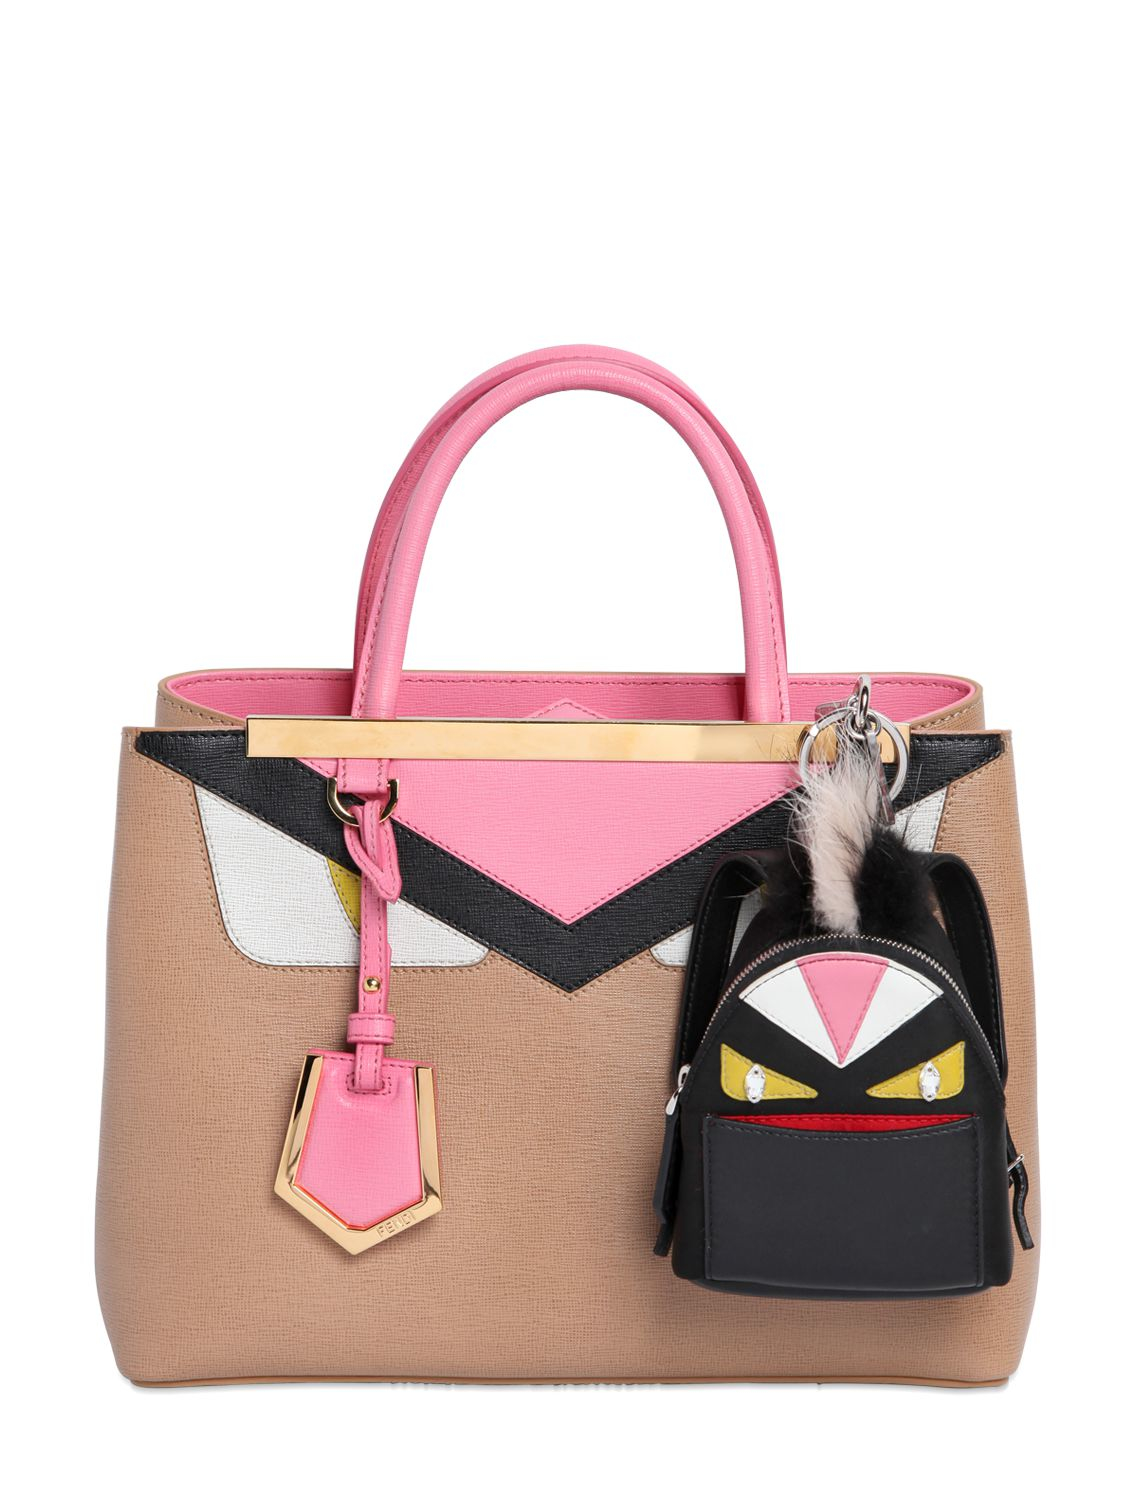 3777aea3c41a Lyst - Fendi Monster Animation Bag Charm With Fur in Black